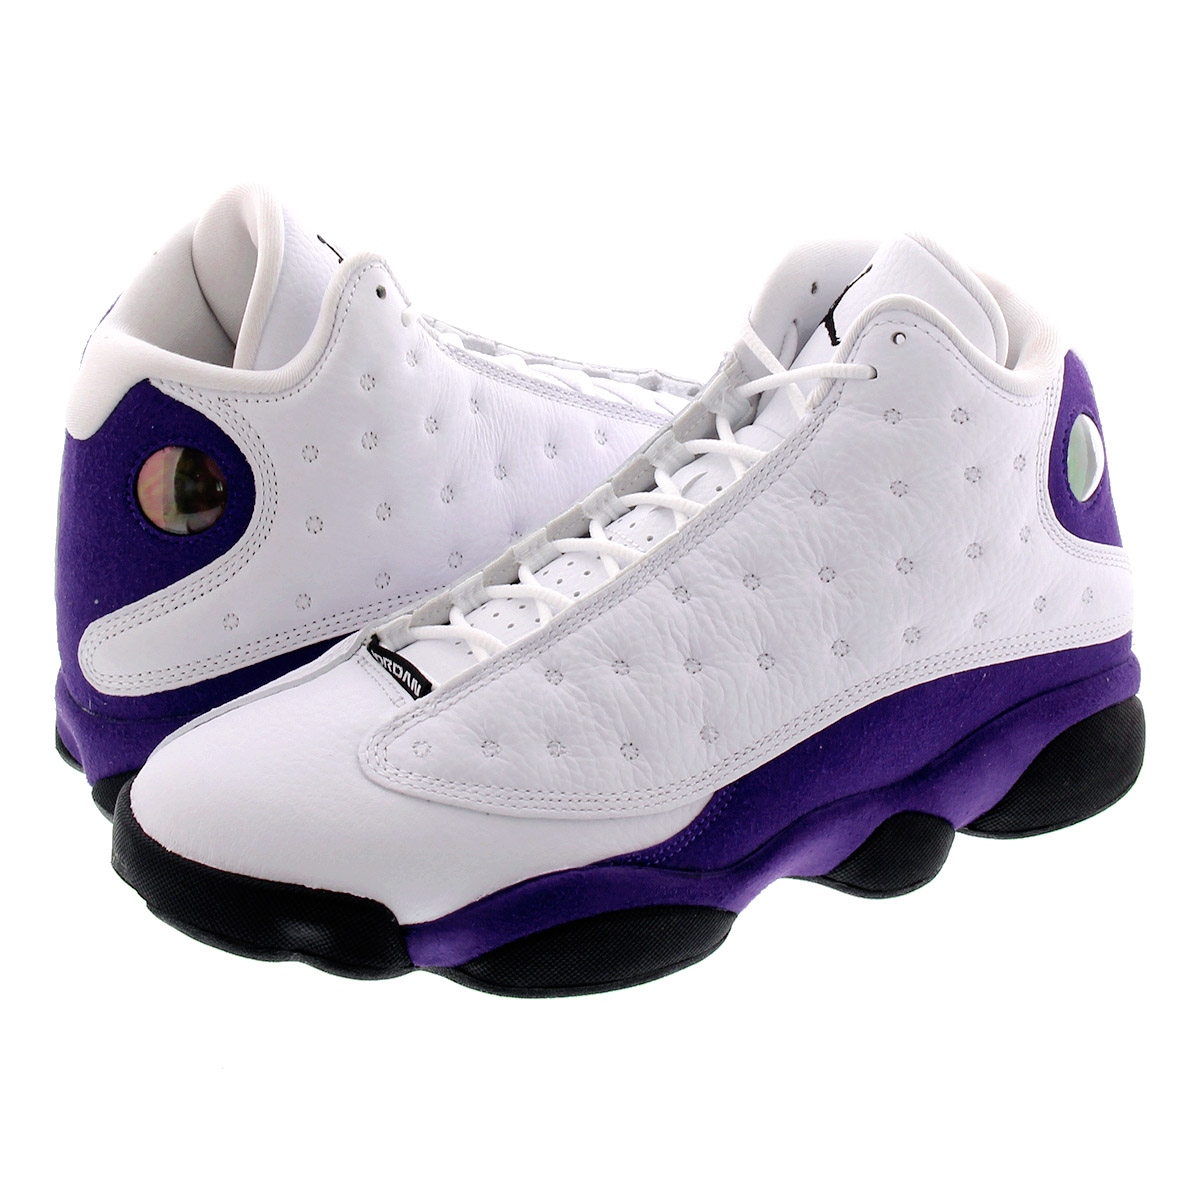 NIKE AIR JORDAN 13 RETRO ナイキ エア ジョーダン 13 レトロ WHITE/BLACK/COURT PURPLE 414571-105